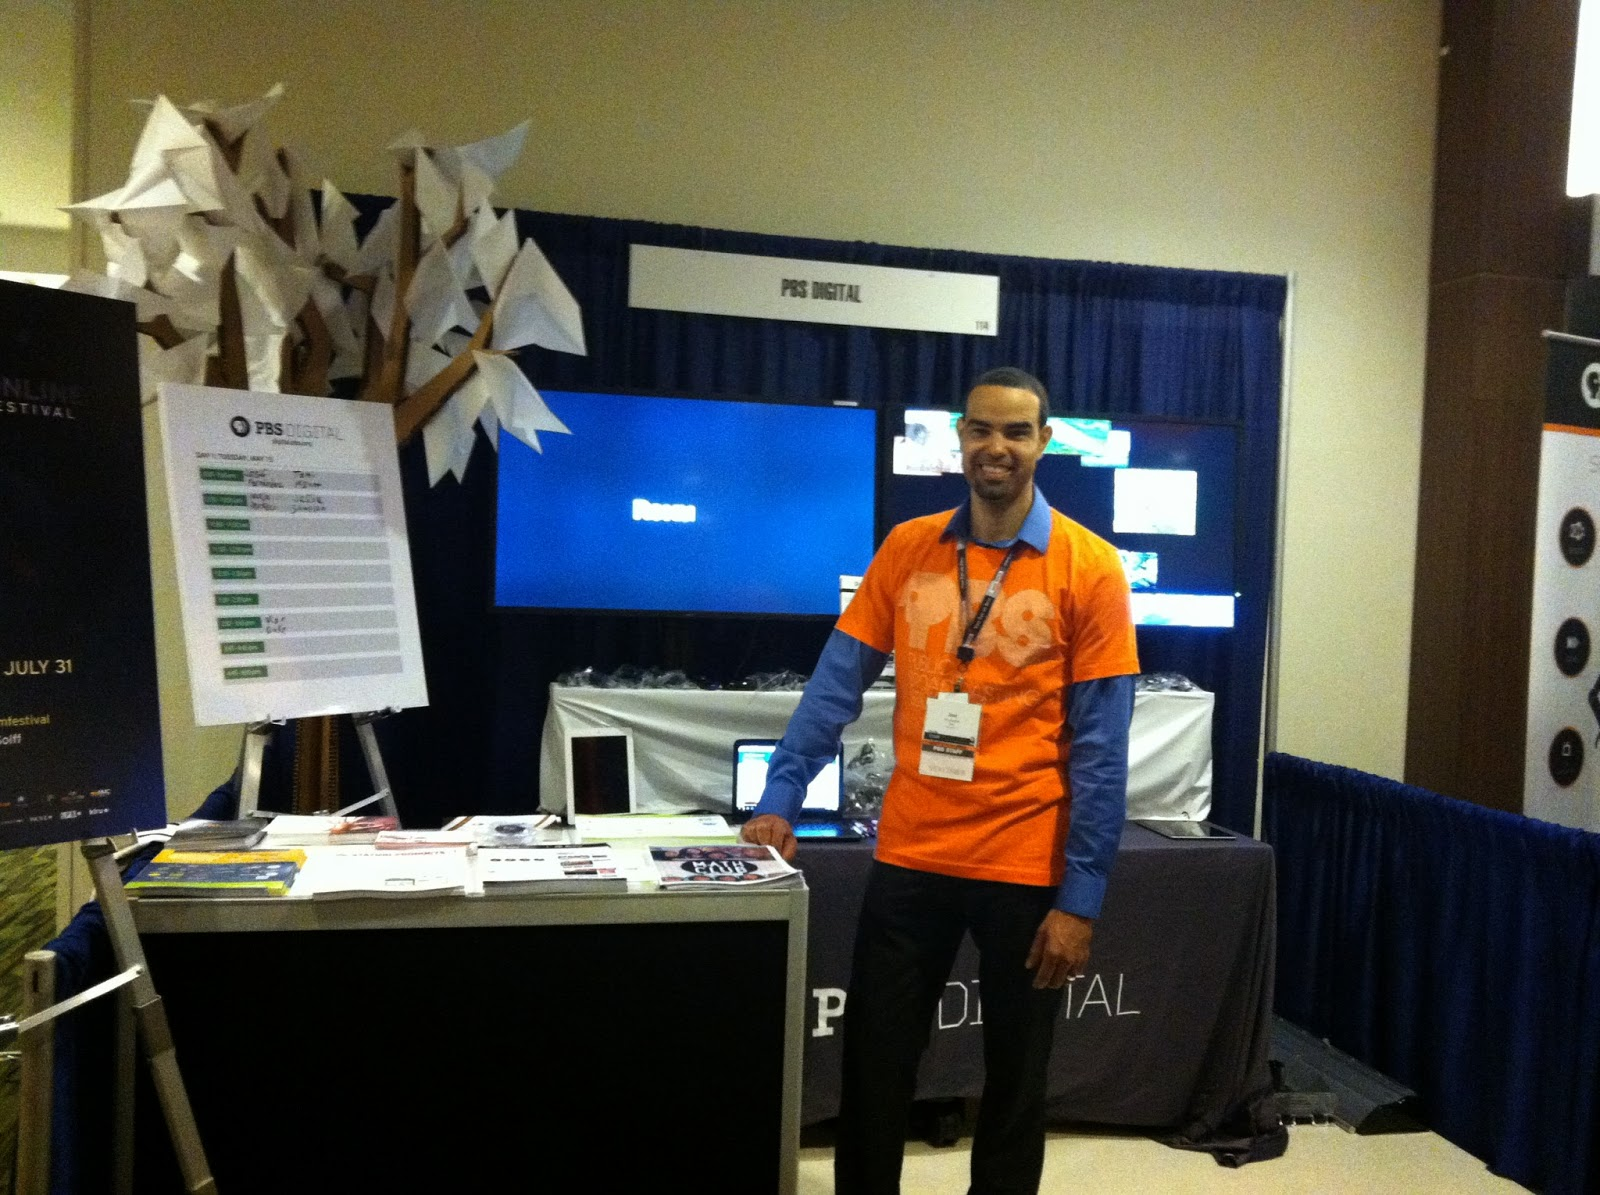 Image \u002D jose at the booth.JPG